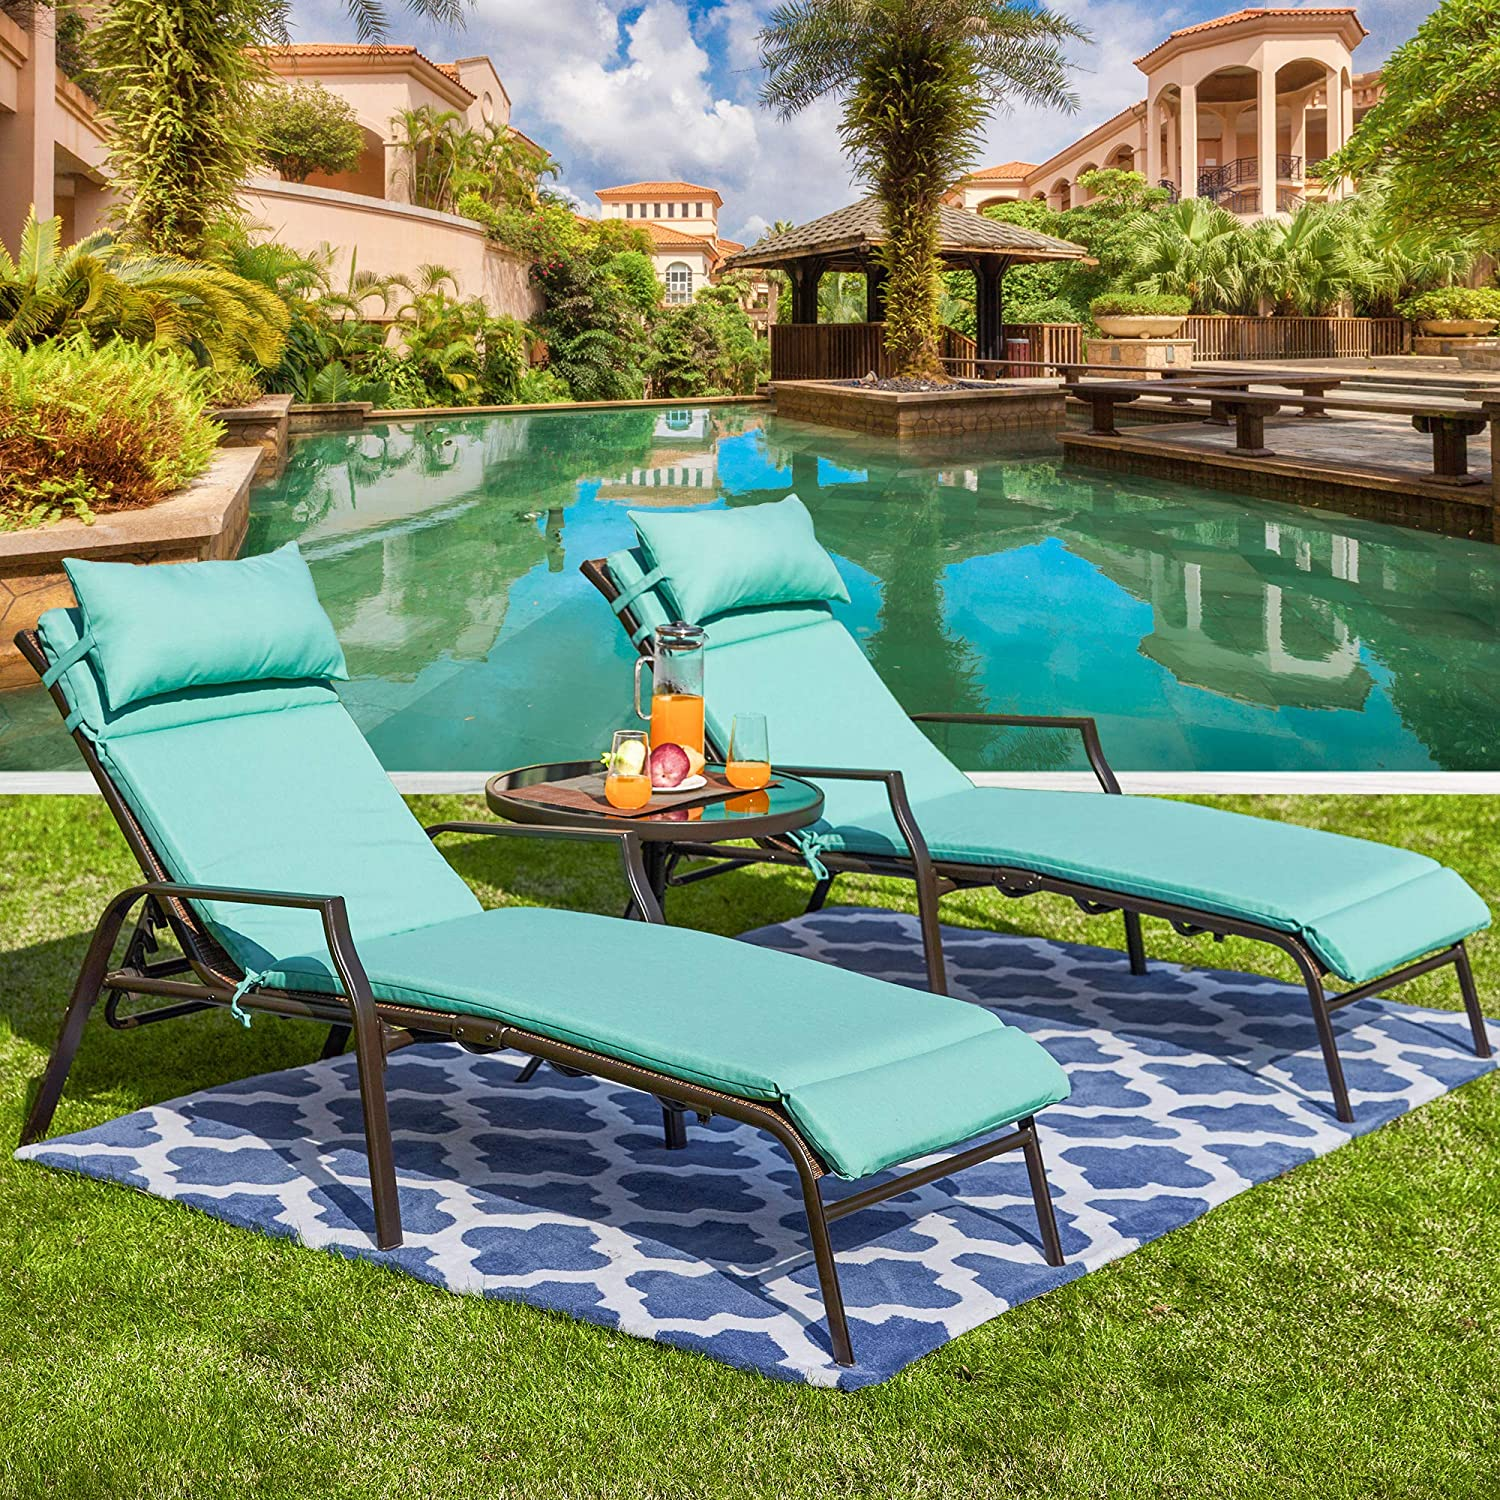 LOKATSE HOME 3 Pieces Outdoor Patio Chaise Lounge Set 2 Adjustable Chairs and 1 Bistro Table with Removable Cushions, Light Blue